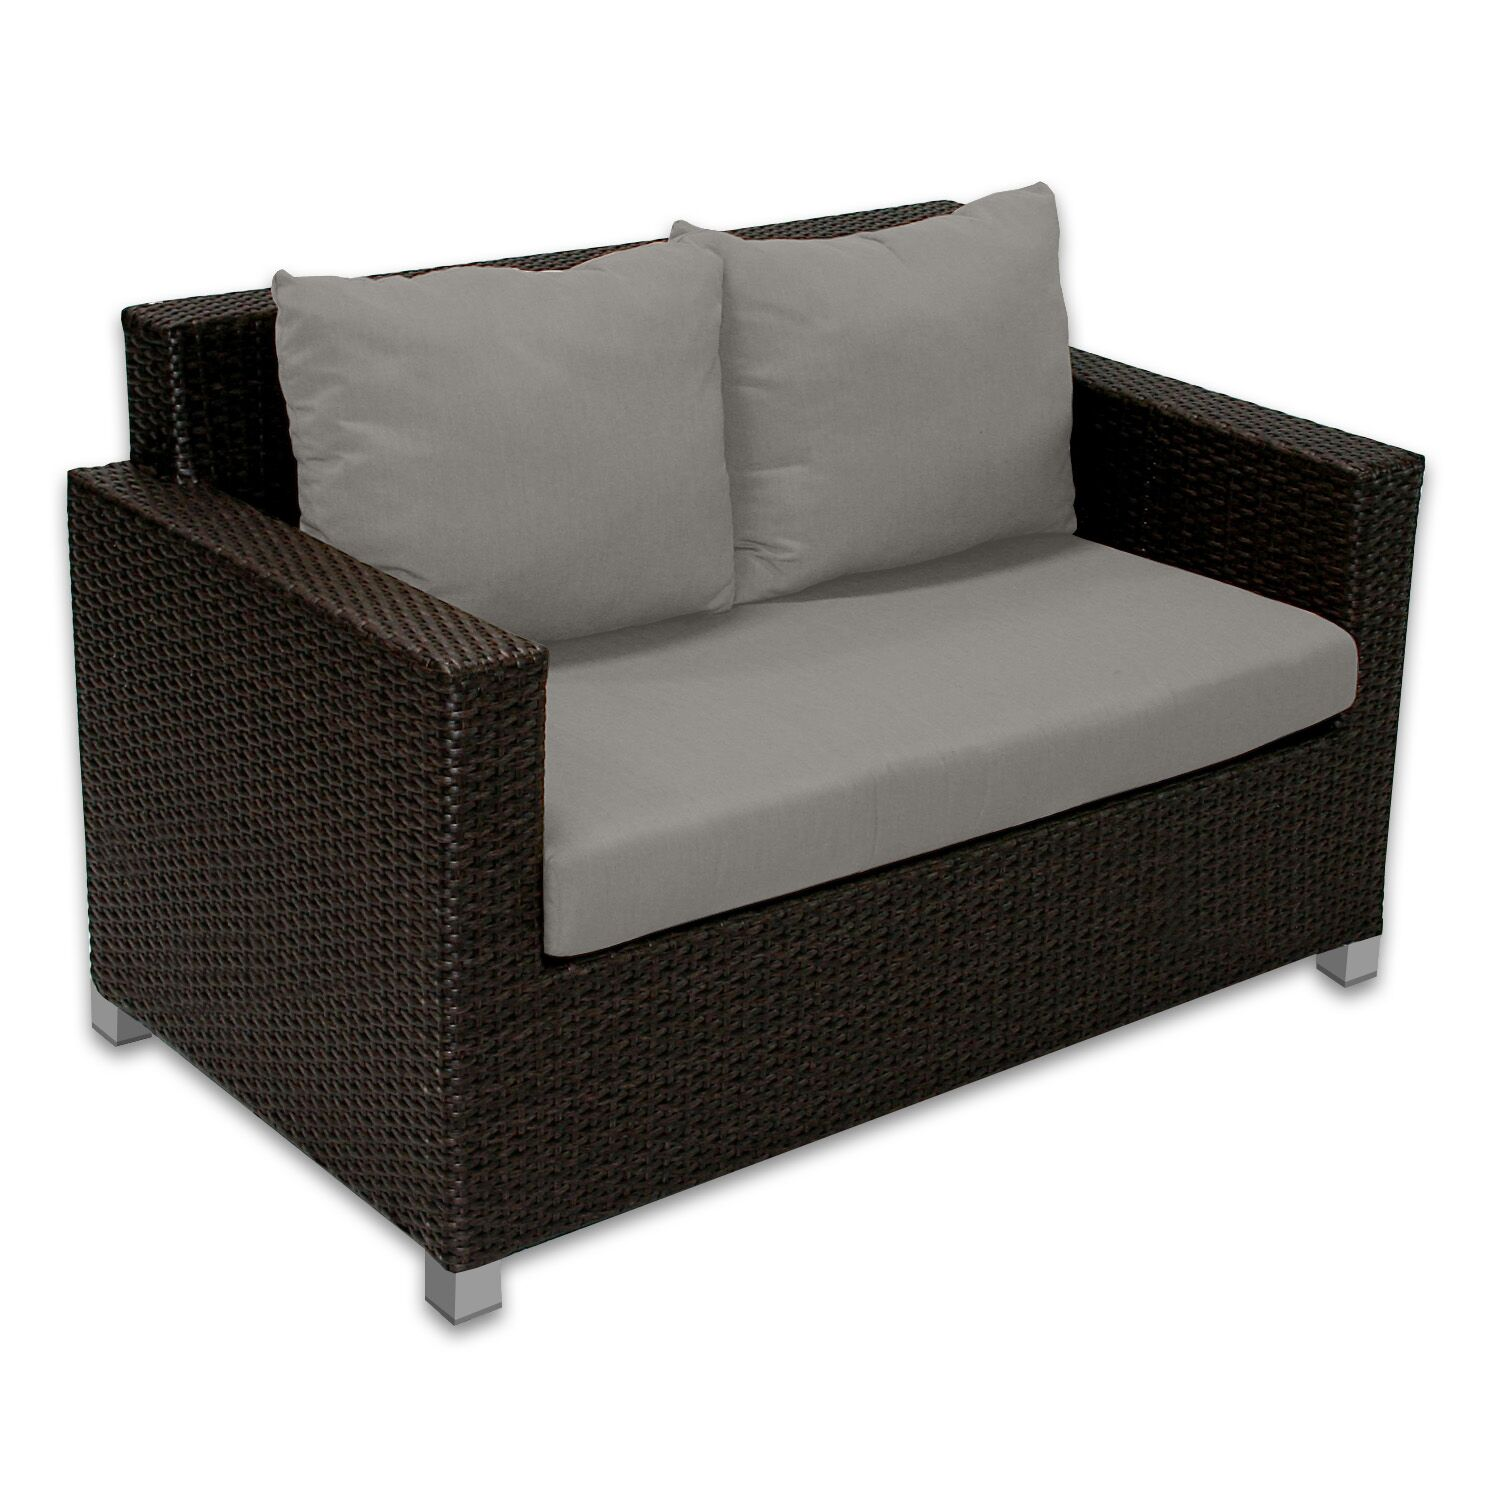 Skye Venice Loveseat with Cushions Fabric: Graphite